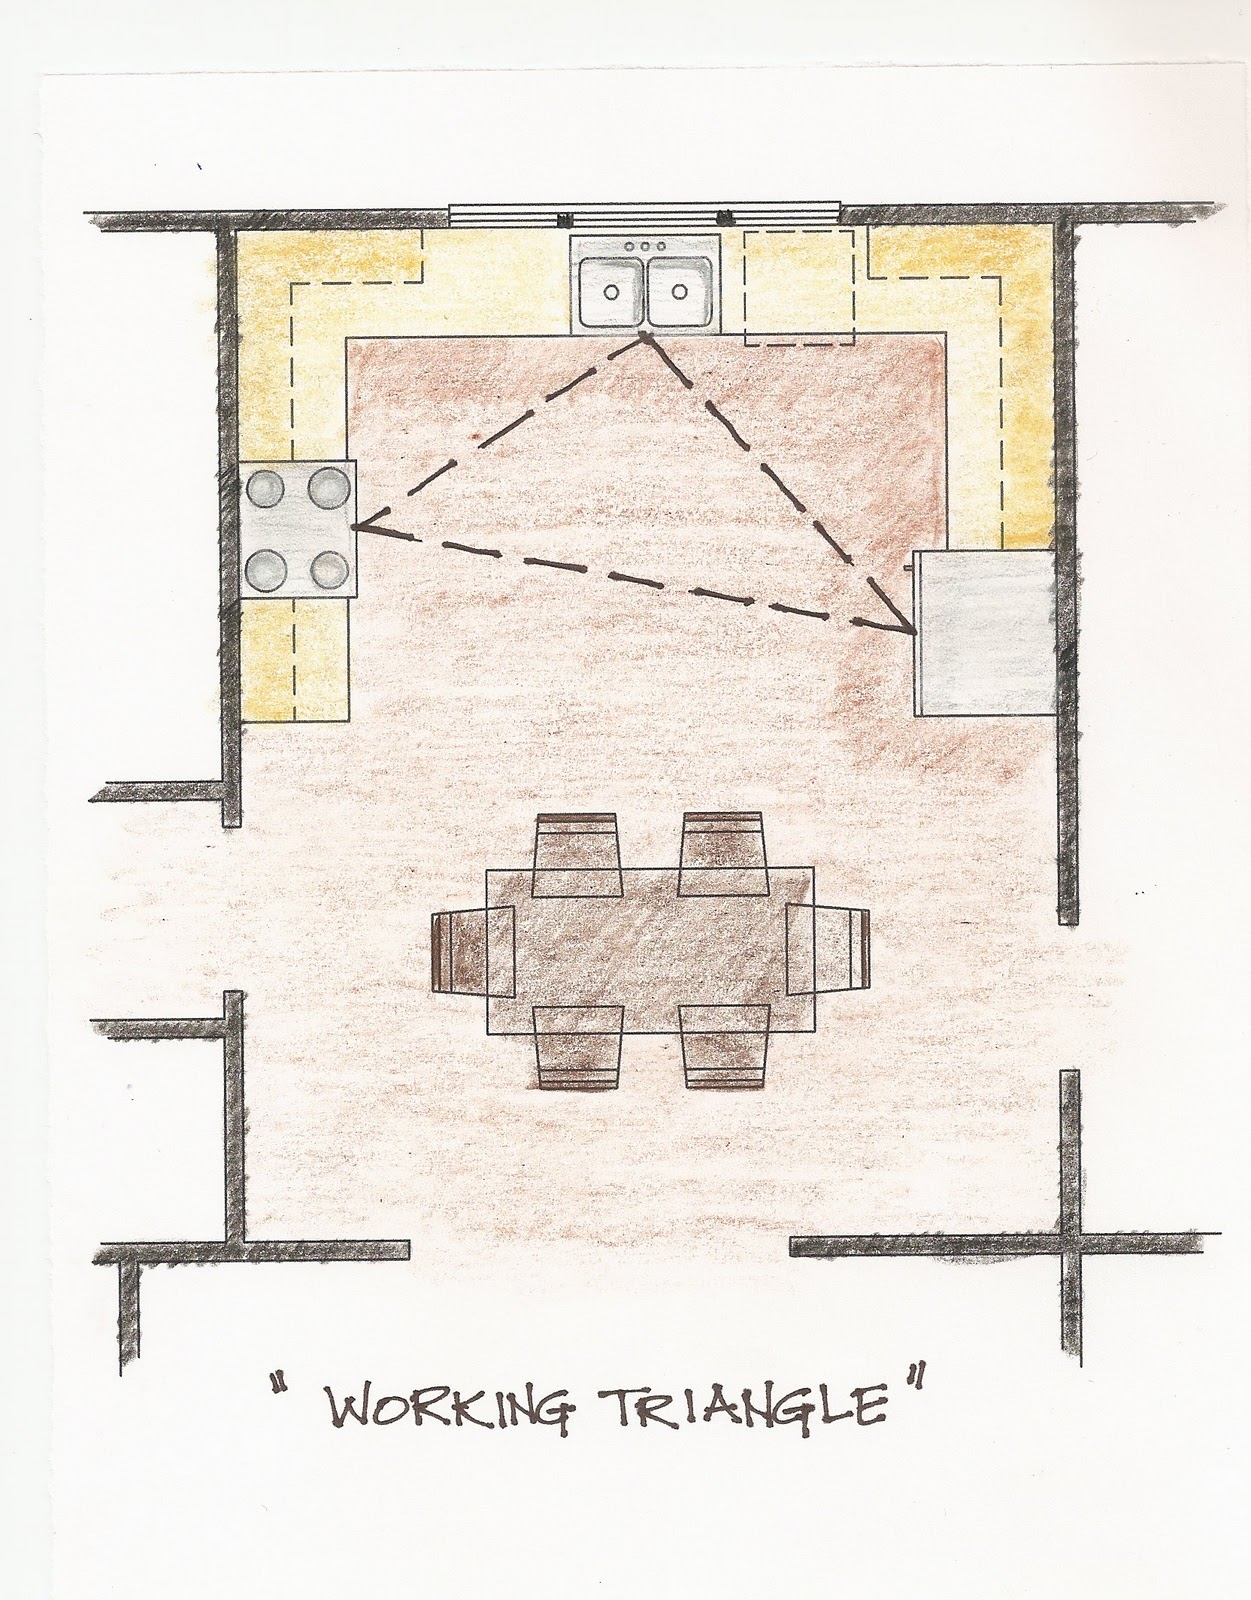 Island Kitchen Floor Plan With Work Triangle kitchen trends: how the island turned the triangle into a center